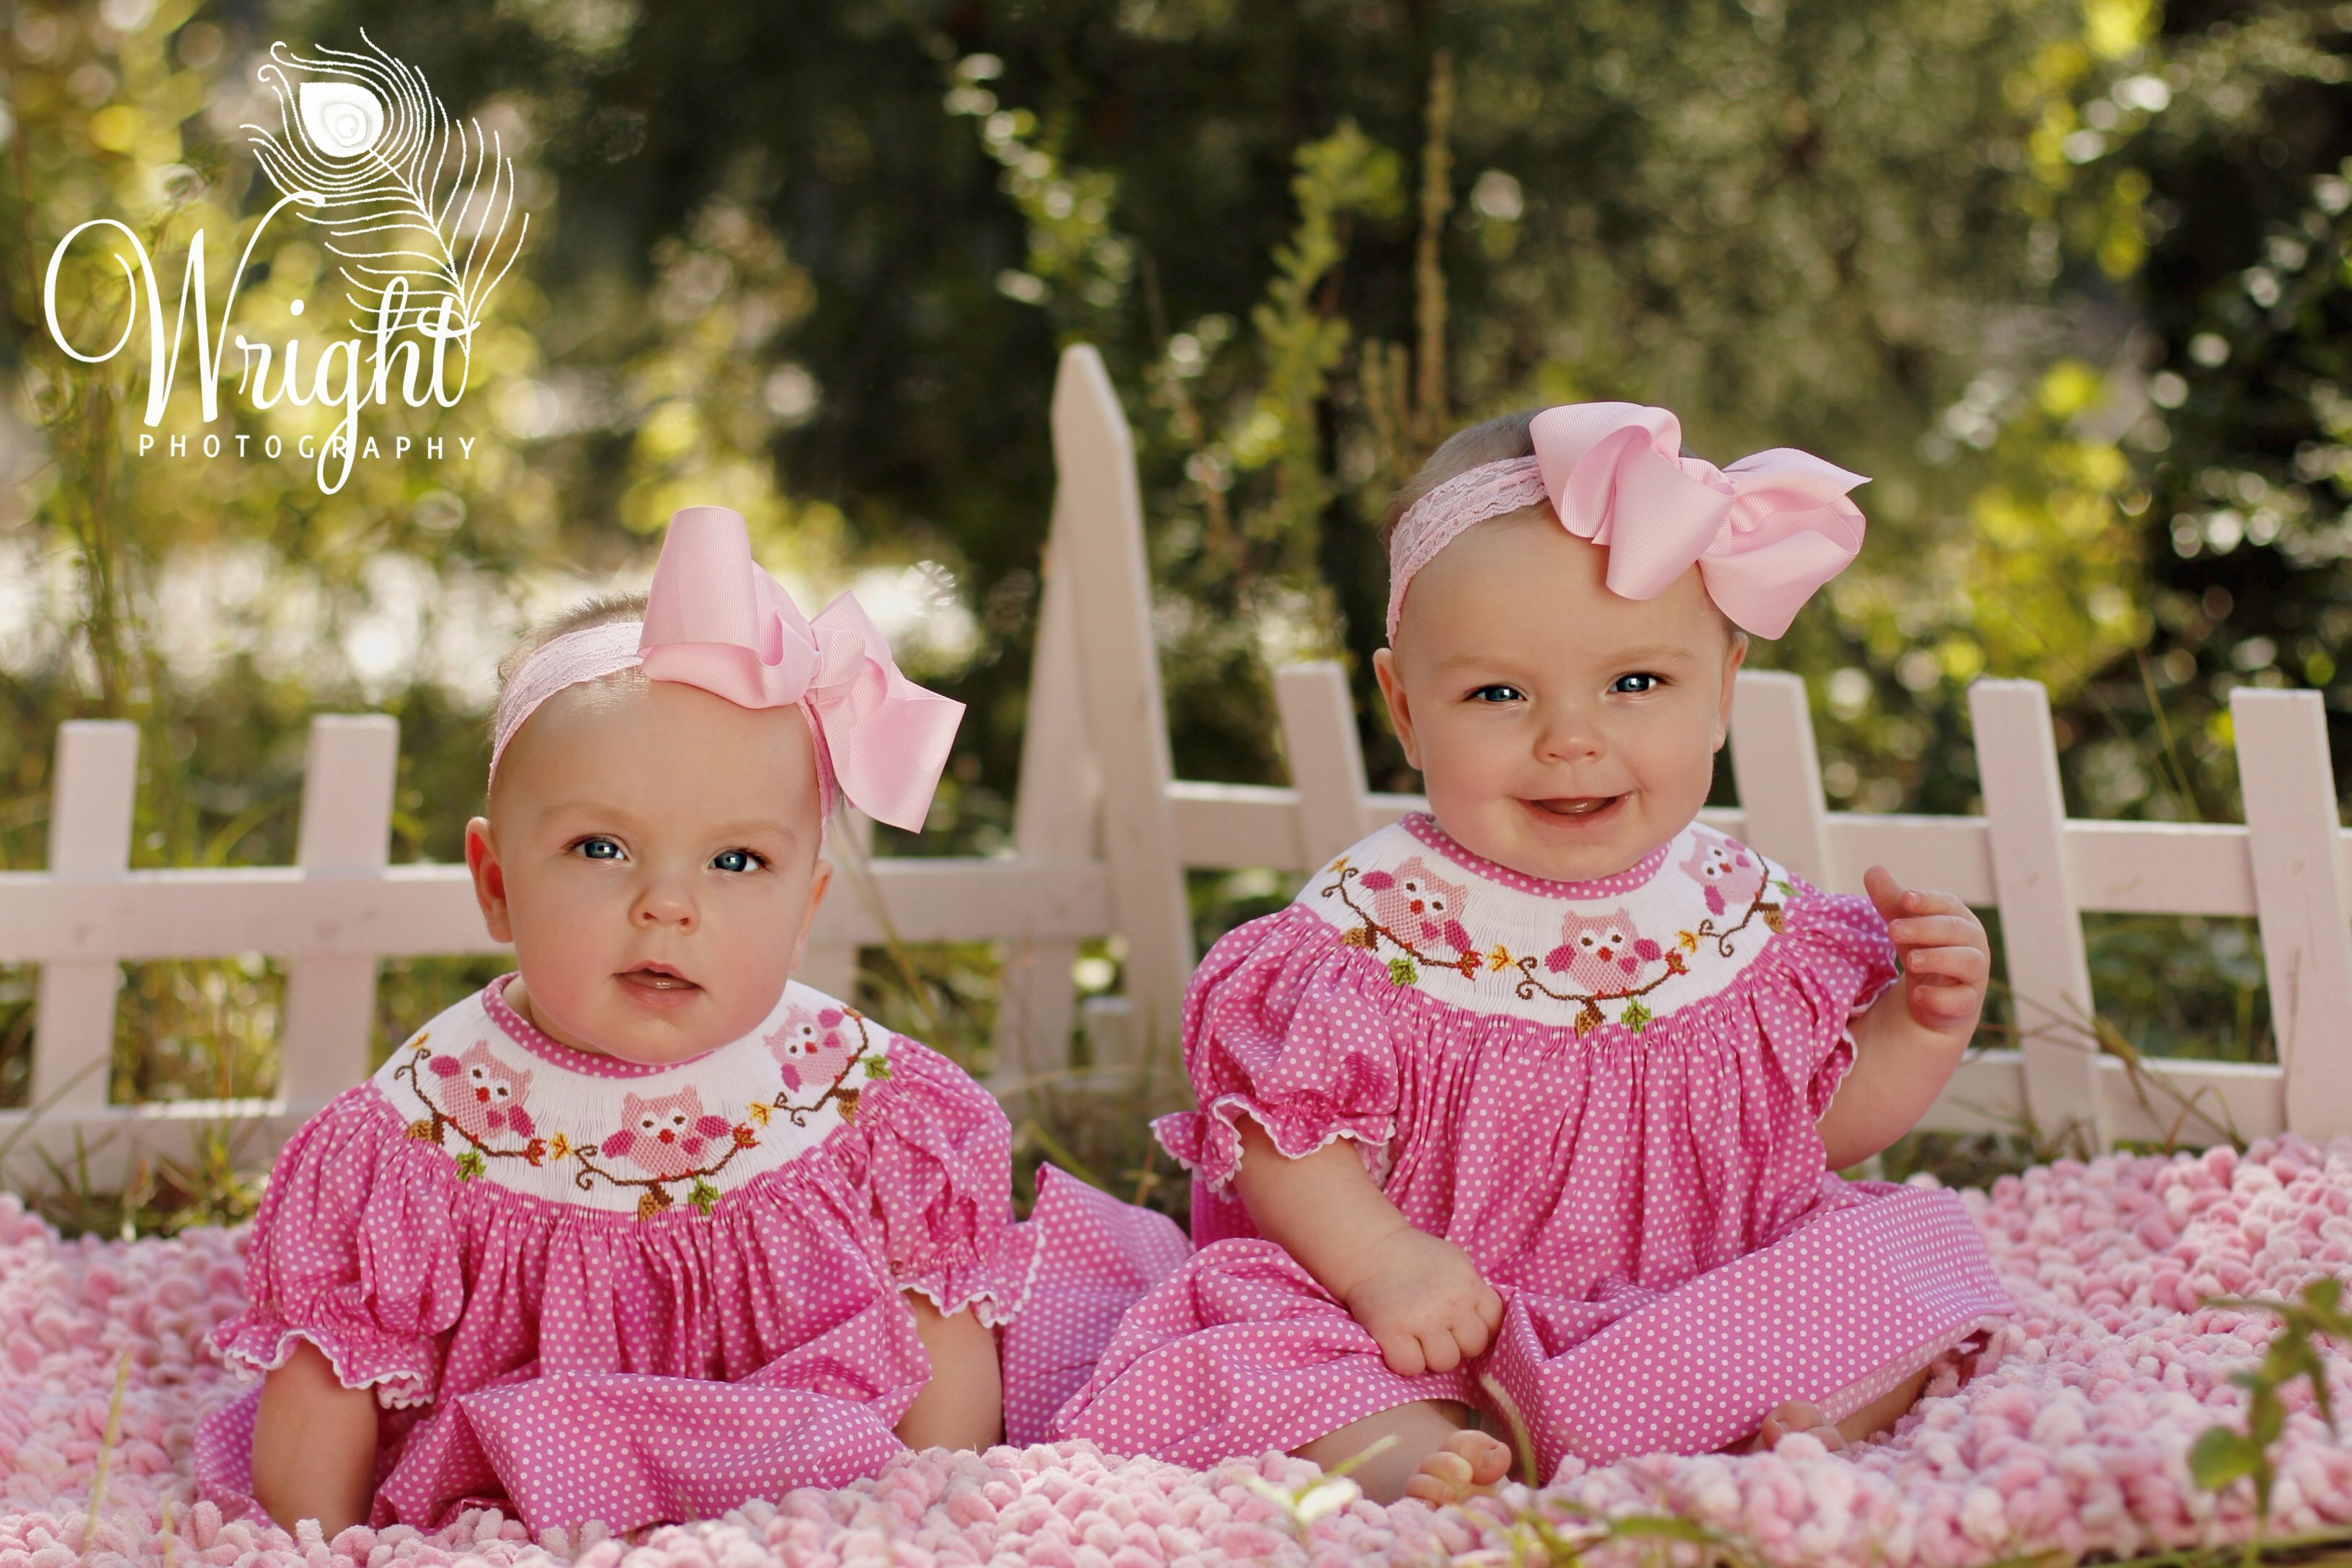 Twin girls. Photo by Wright Photography in Anderson SC.  https://www.facebook.com/pages/Wright-Photography/155481467881207